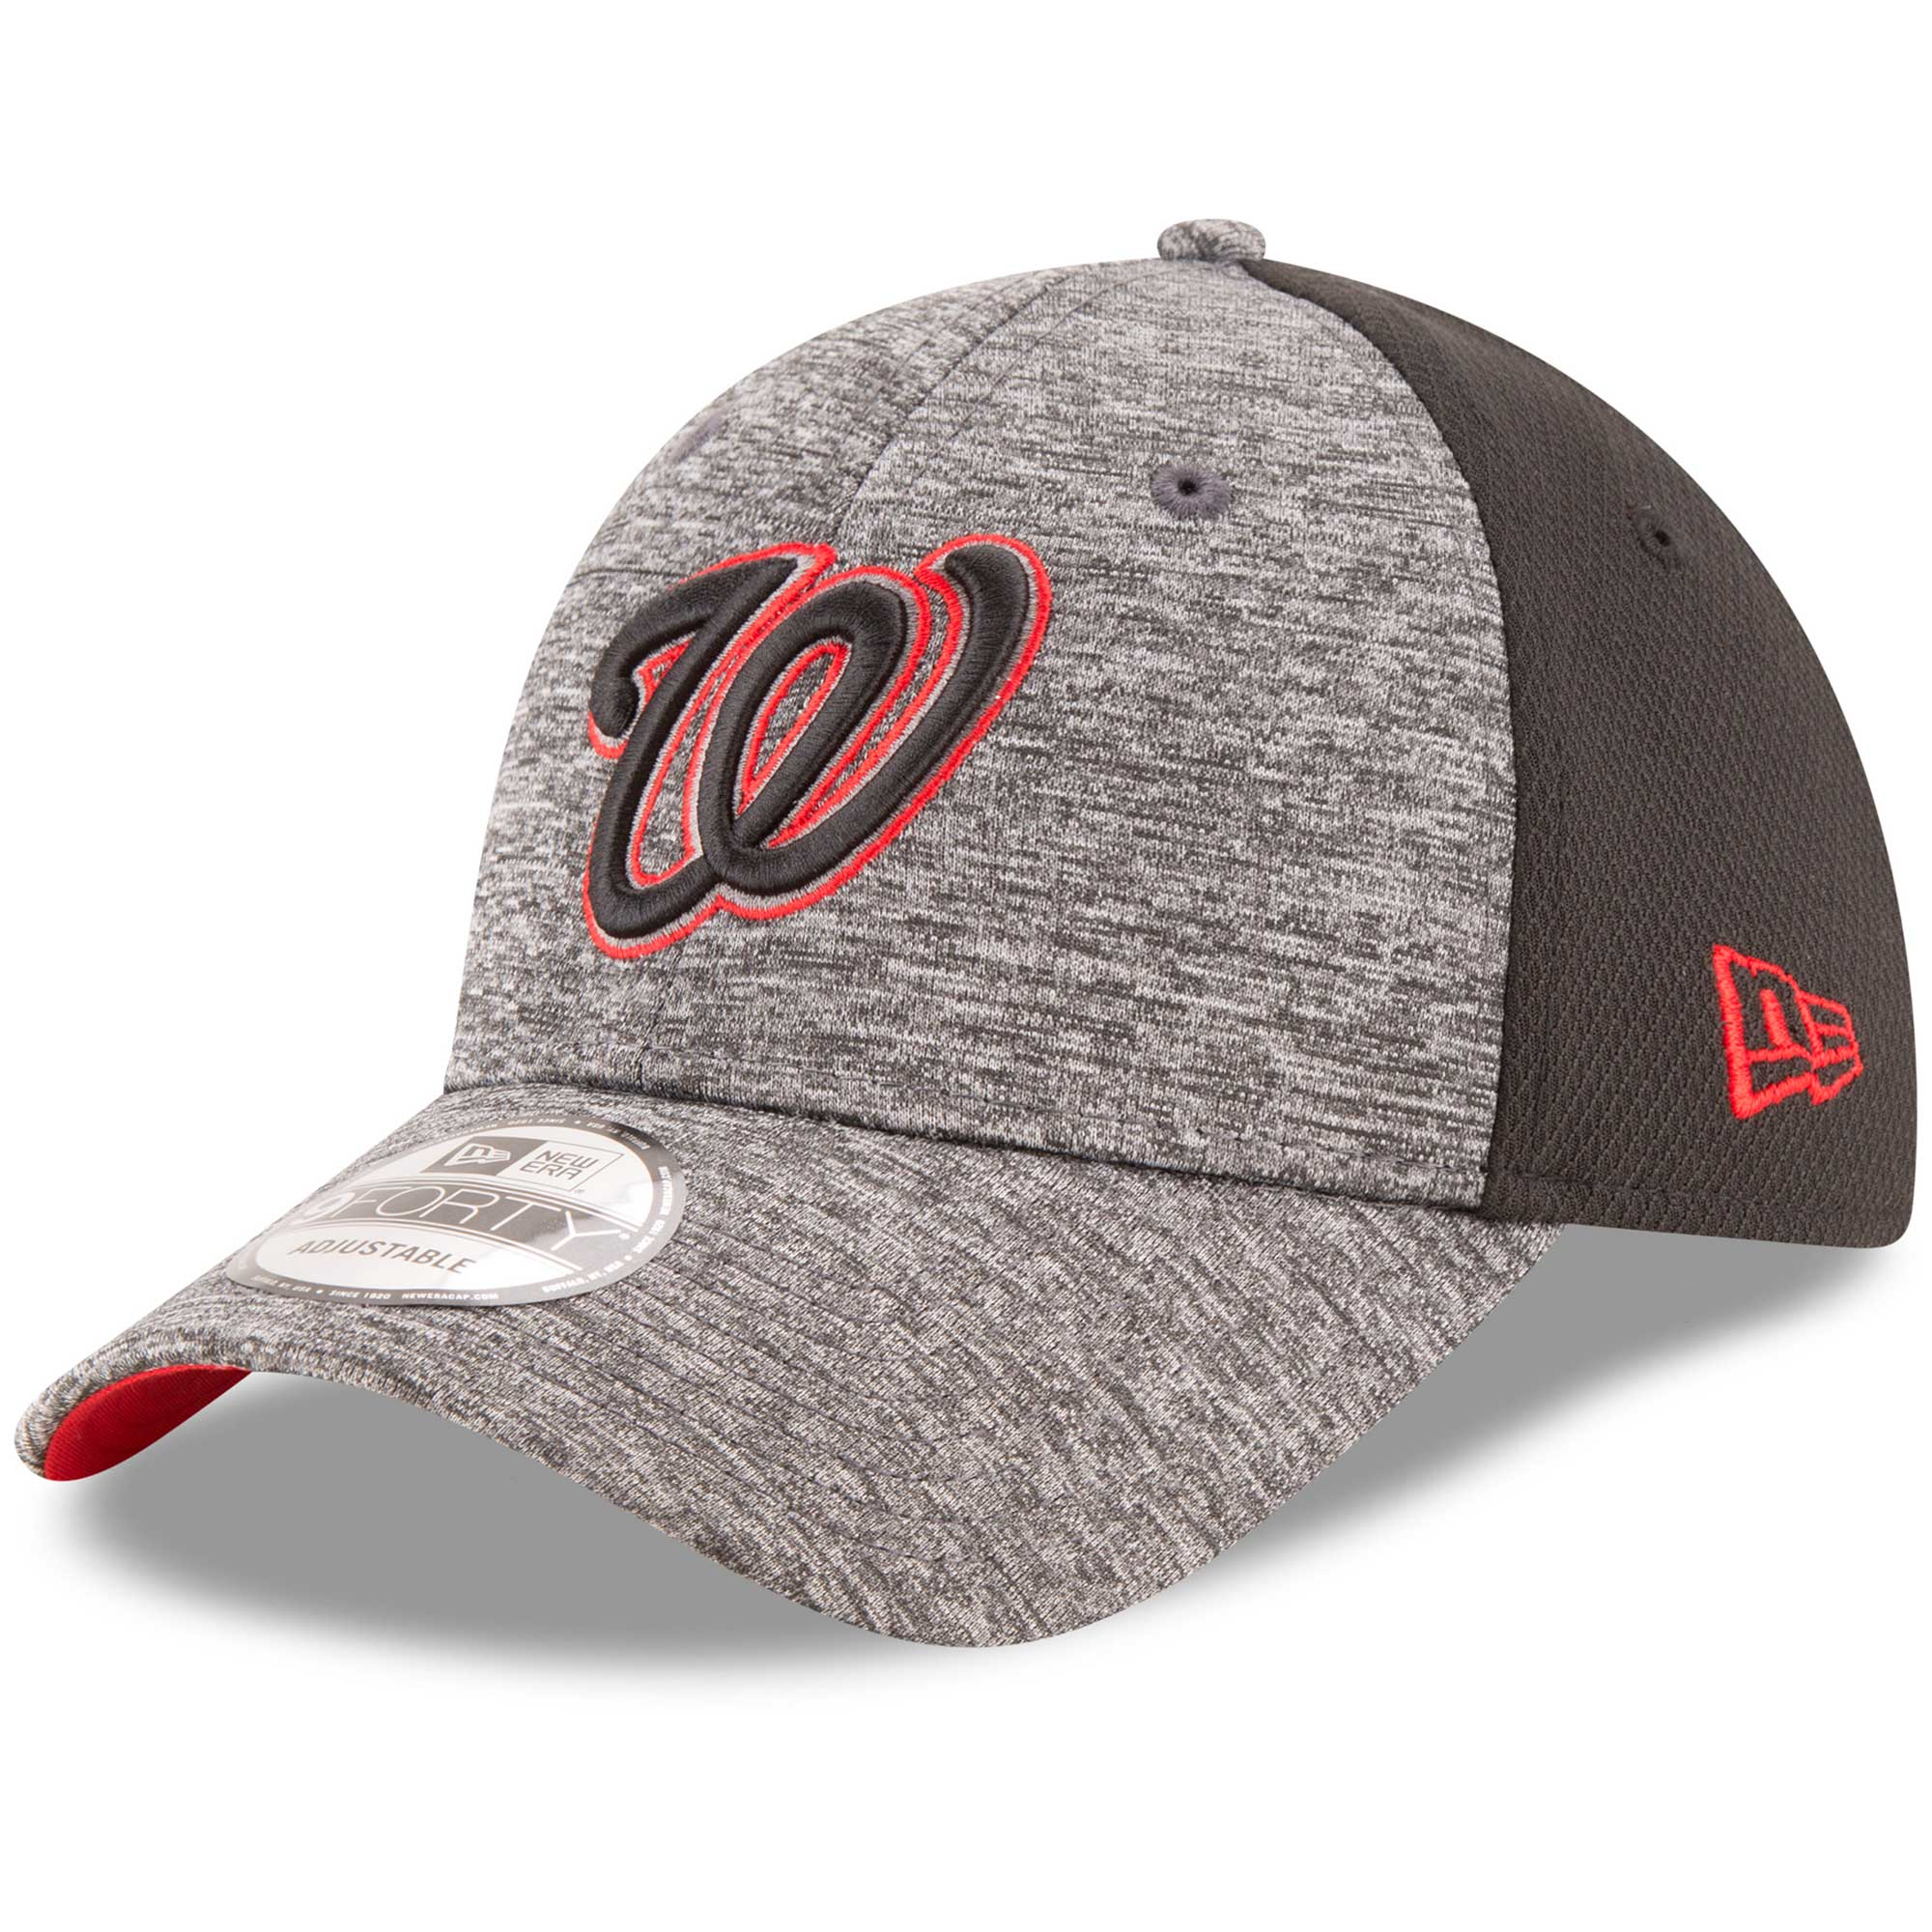 Washington Nationals New Era Shadowed Team Logo 9FORTY Adjustable Hat - Heathered Gray/Black - OSFA